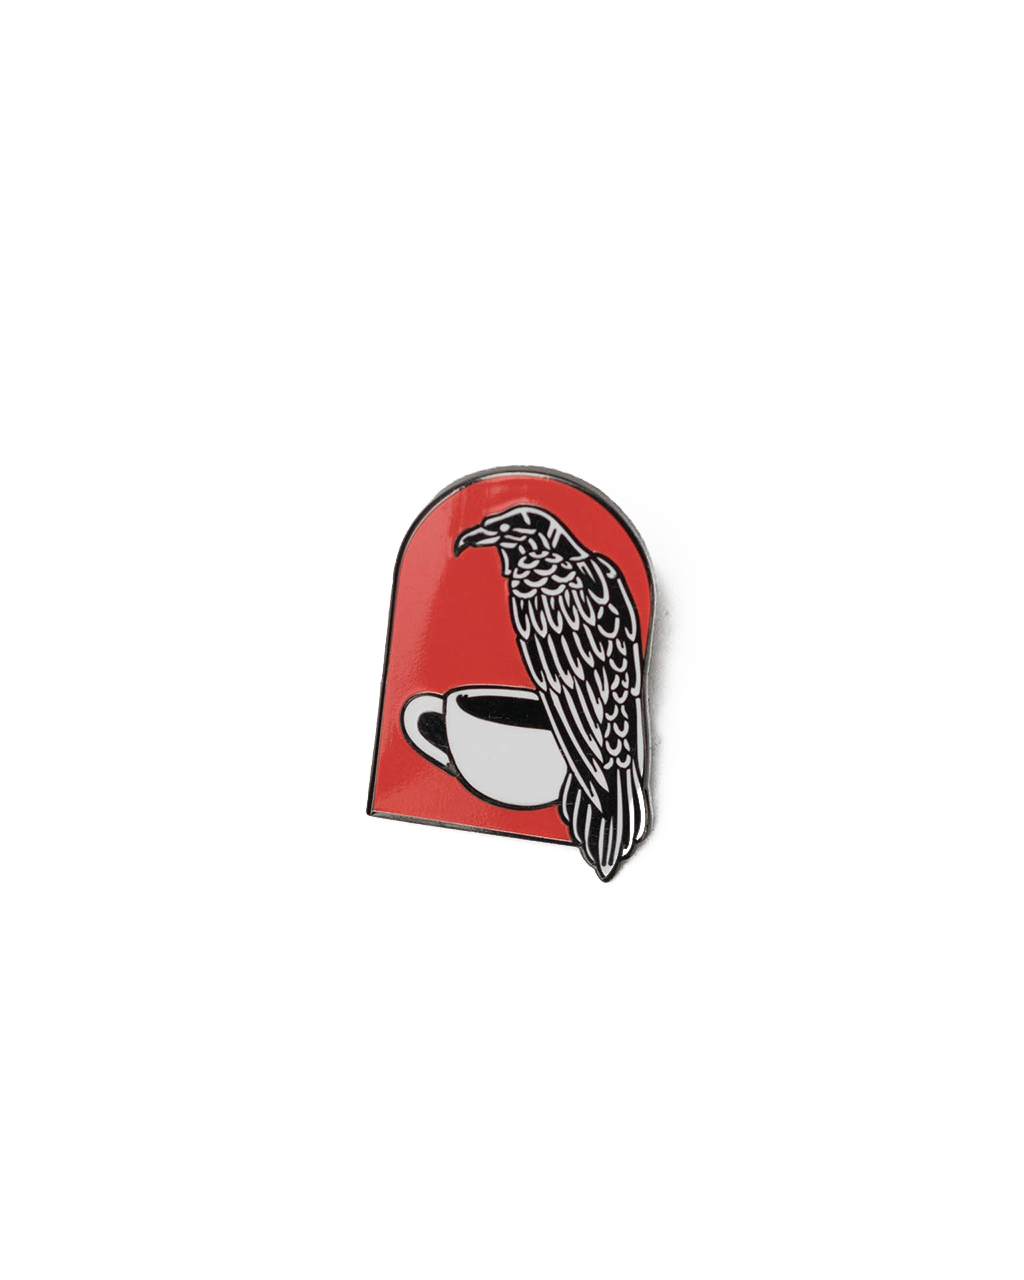 Coffee Crow Pin